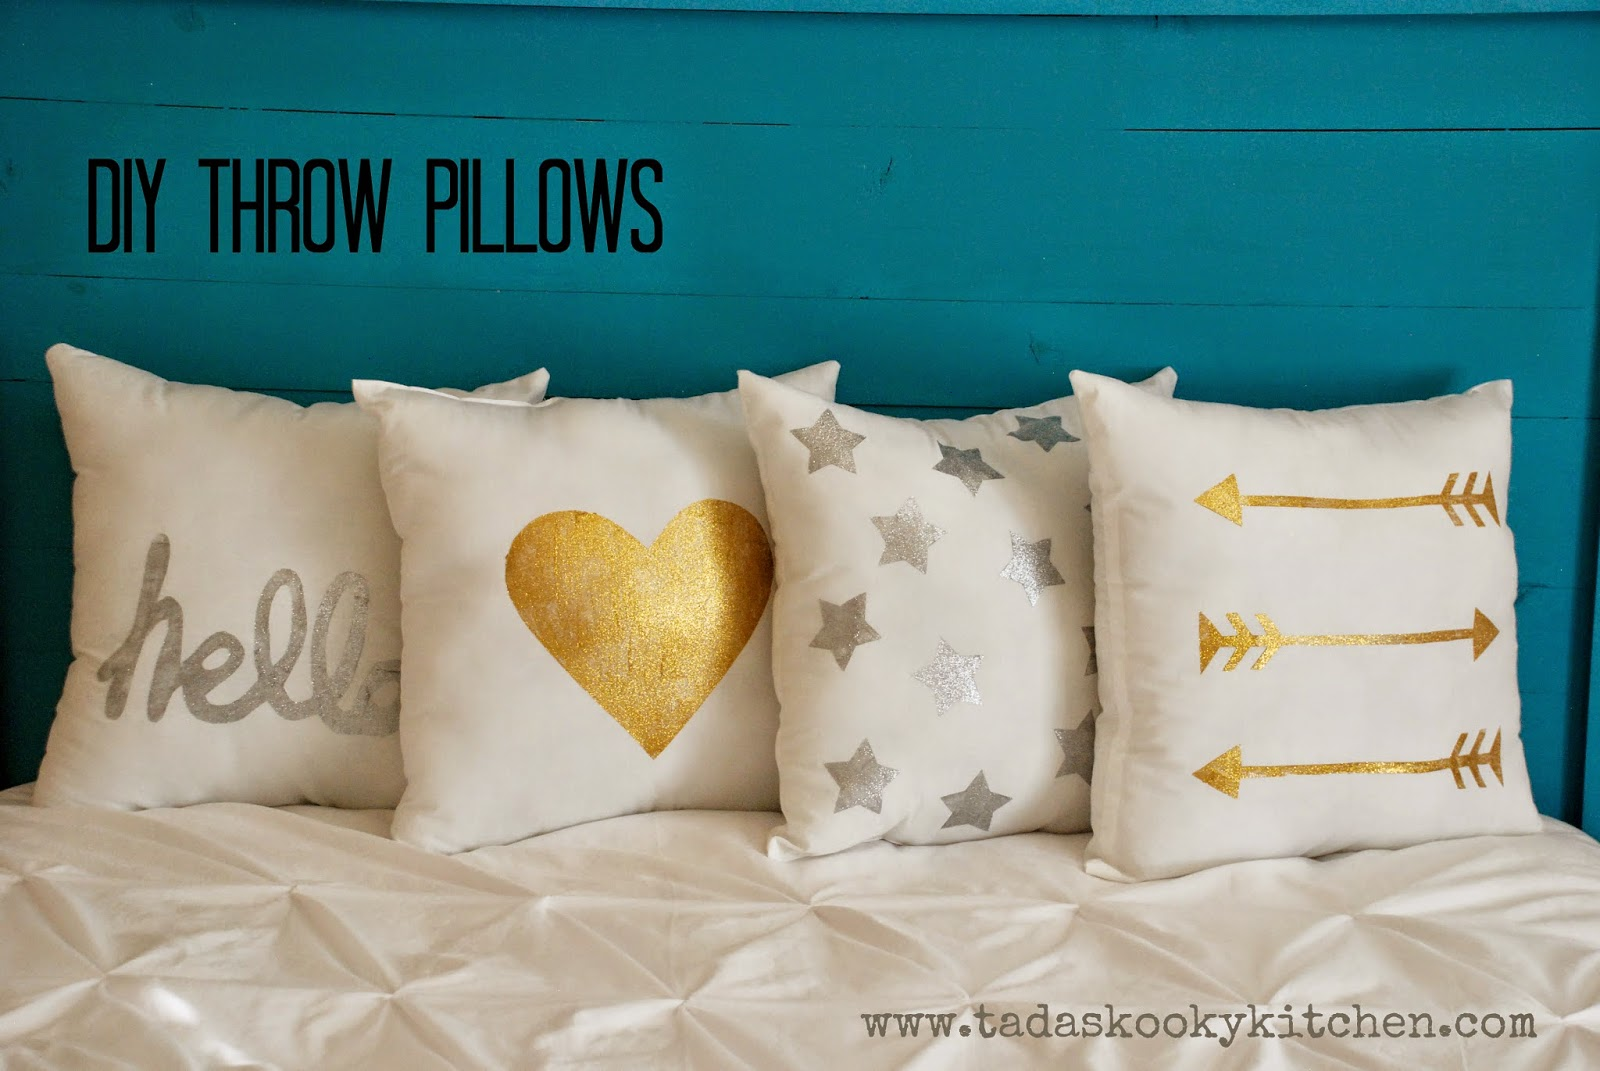 Decorative Pillows Diy www.pixshark.com - Images Galleries With A Bite!